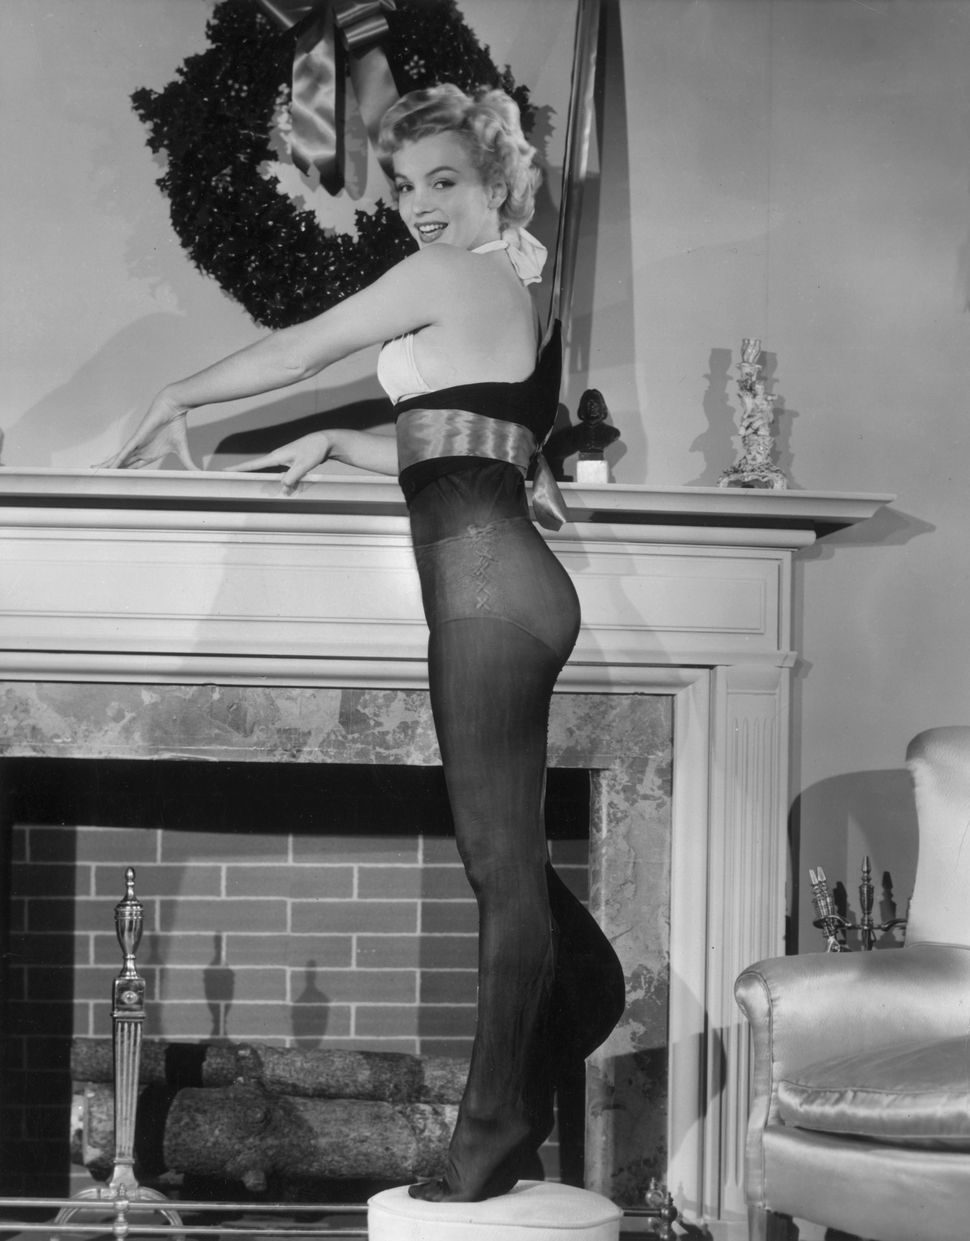 Marilyn Monroe poses while standing inside an oversized nylon Christmas stocking beside a fireplace, 1951.